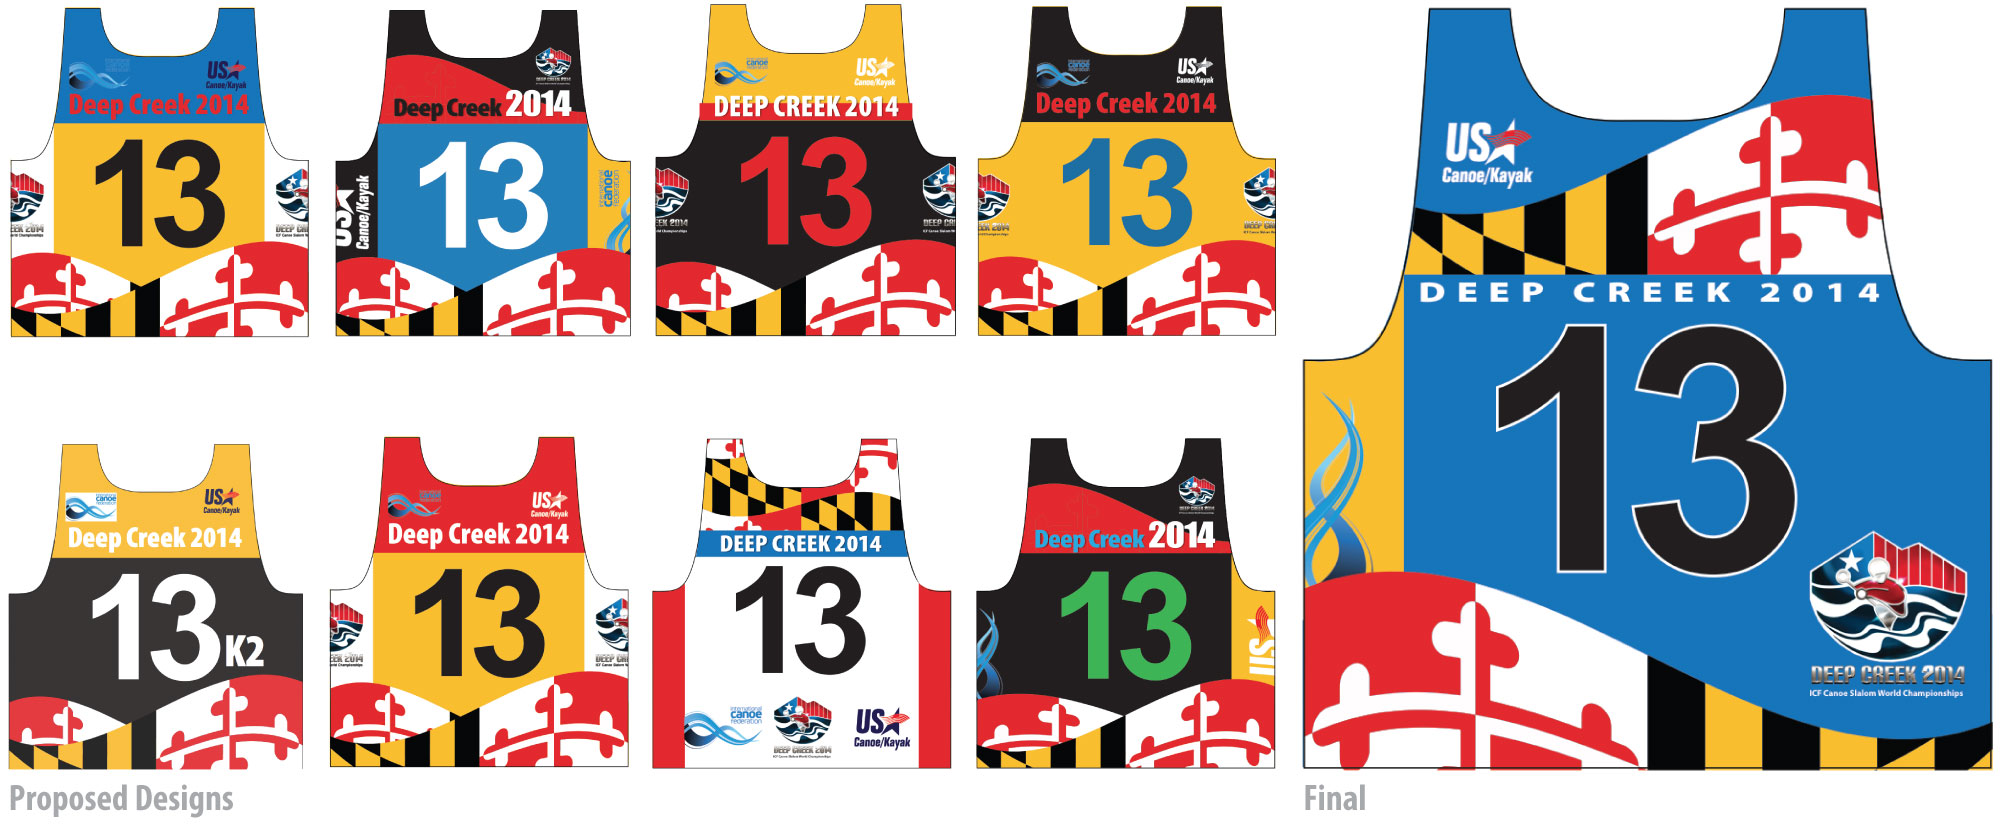 """Designing the numbered bib for the athletes to wear in competition was definitely a first for me. The only concept input was that it be a Maryland theme, other than that I was on my own. The first thing to do was to try to find out what """"not to do"""" when designing a bib, so I researched event footage and didn't stray much from the norm. There are times to be a rebel and this wasn't one of them. A very tight deadline and lack of knowledge of fabric printing kept me from having anything near a comfort zone. The design space was not without restrictions and rules governing text readability along with sponsor and organization logo protocol and hierarchy (it was made clear that under the arm was not prime real estate). There were political considerations that dictated placement and size of logos, along with the degree of contrast in colors. It was obvious once I had the template, this project would require more than the average number of options for the client(s) to ever feel the design was fair and equitable. Everything considered, the approval process was slow but fairly painless and I think a minimum of compromises were made by all. This is about half of the design variations that were shown."""